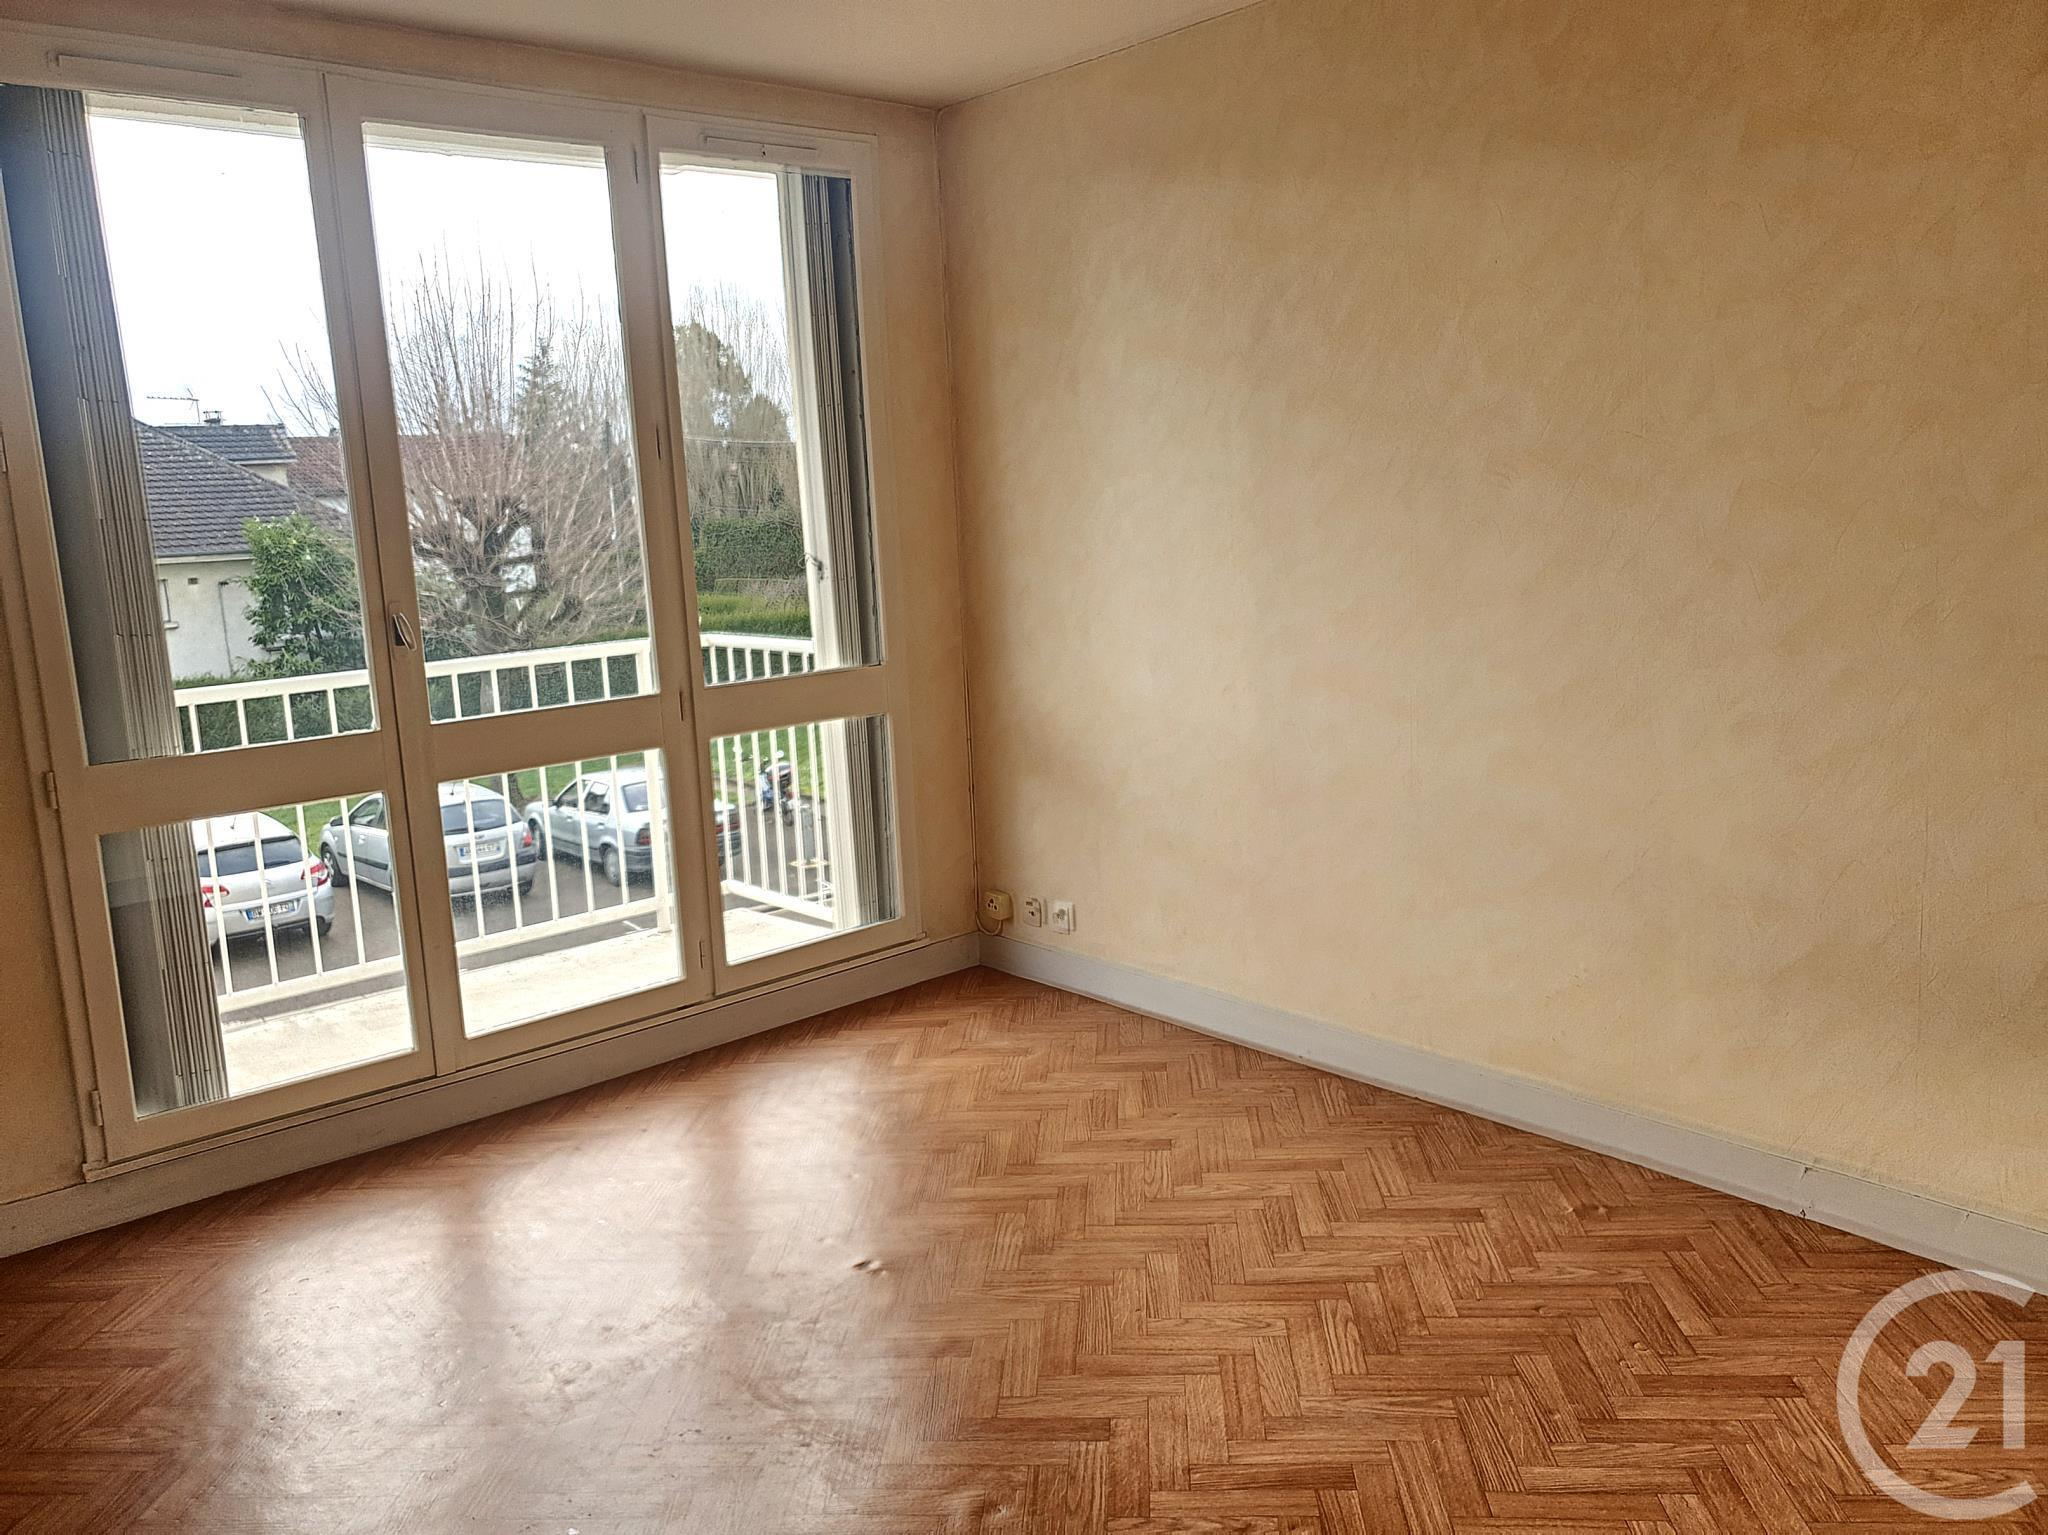 Appartement F1 à louer - 1 pièce - 34 m2 - TROYES - 10 - CHAMPAGNE-ARDENNE